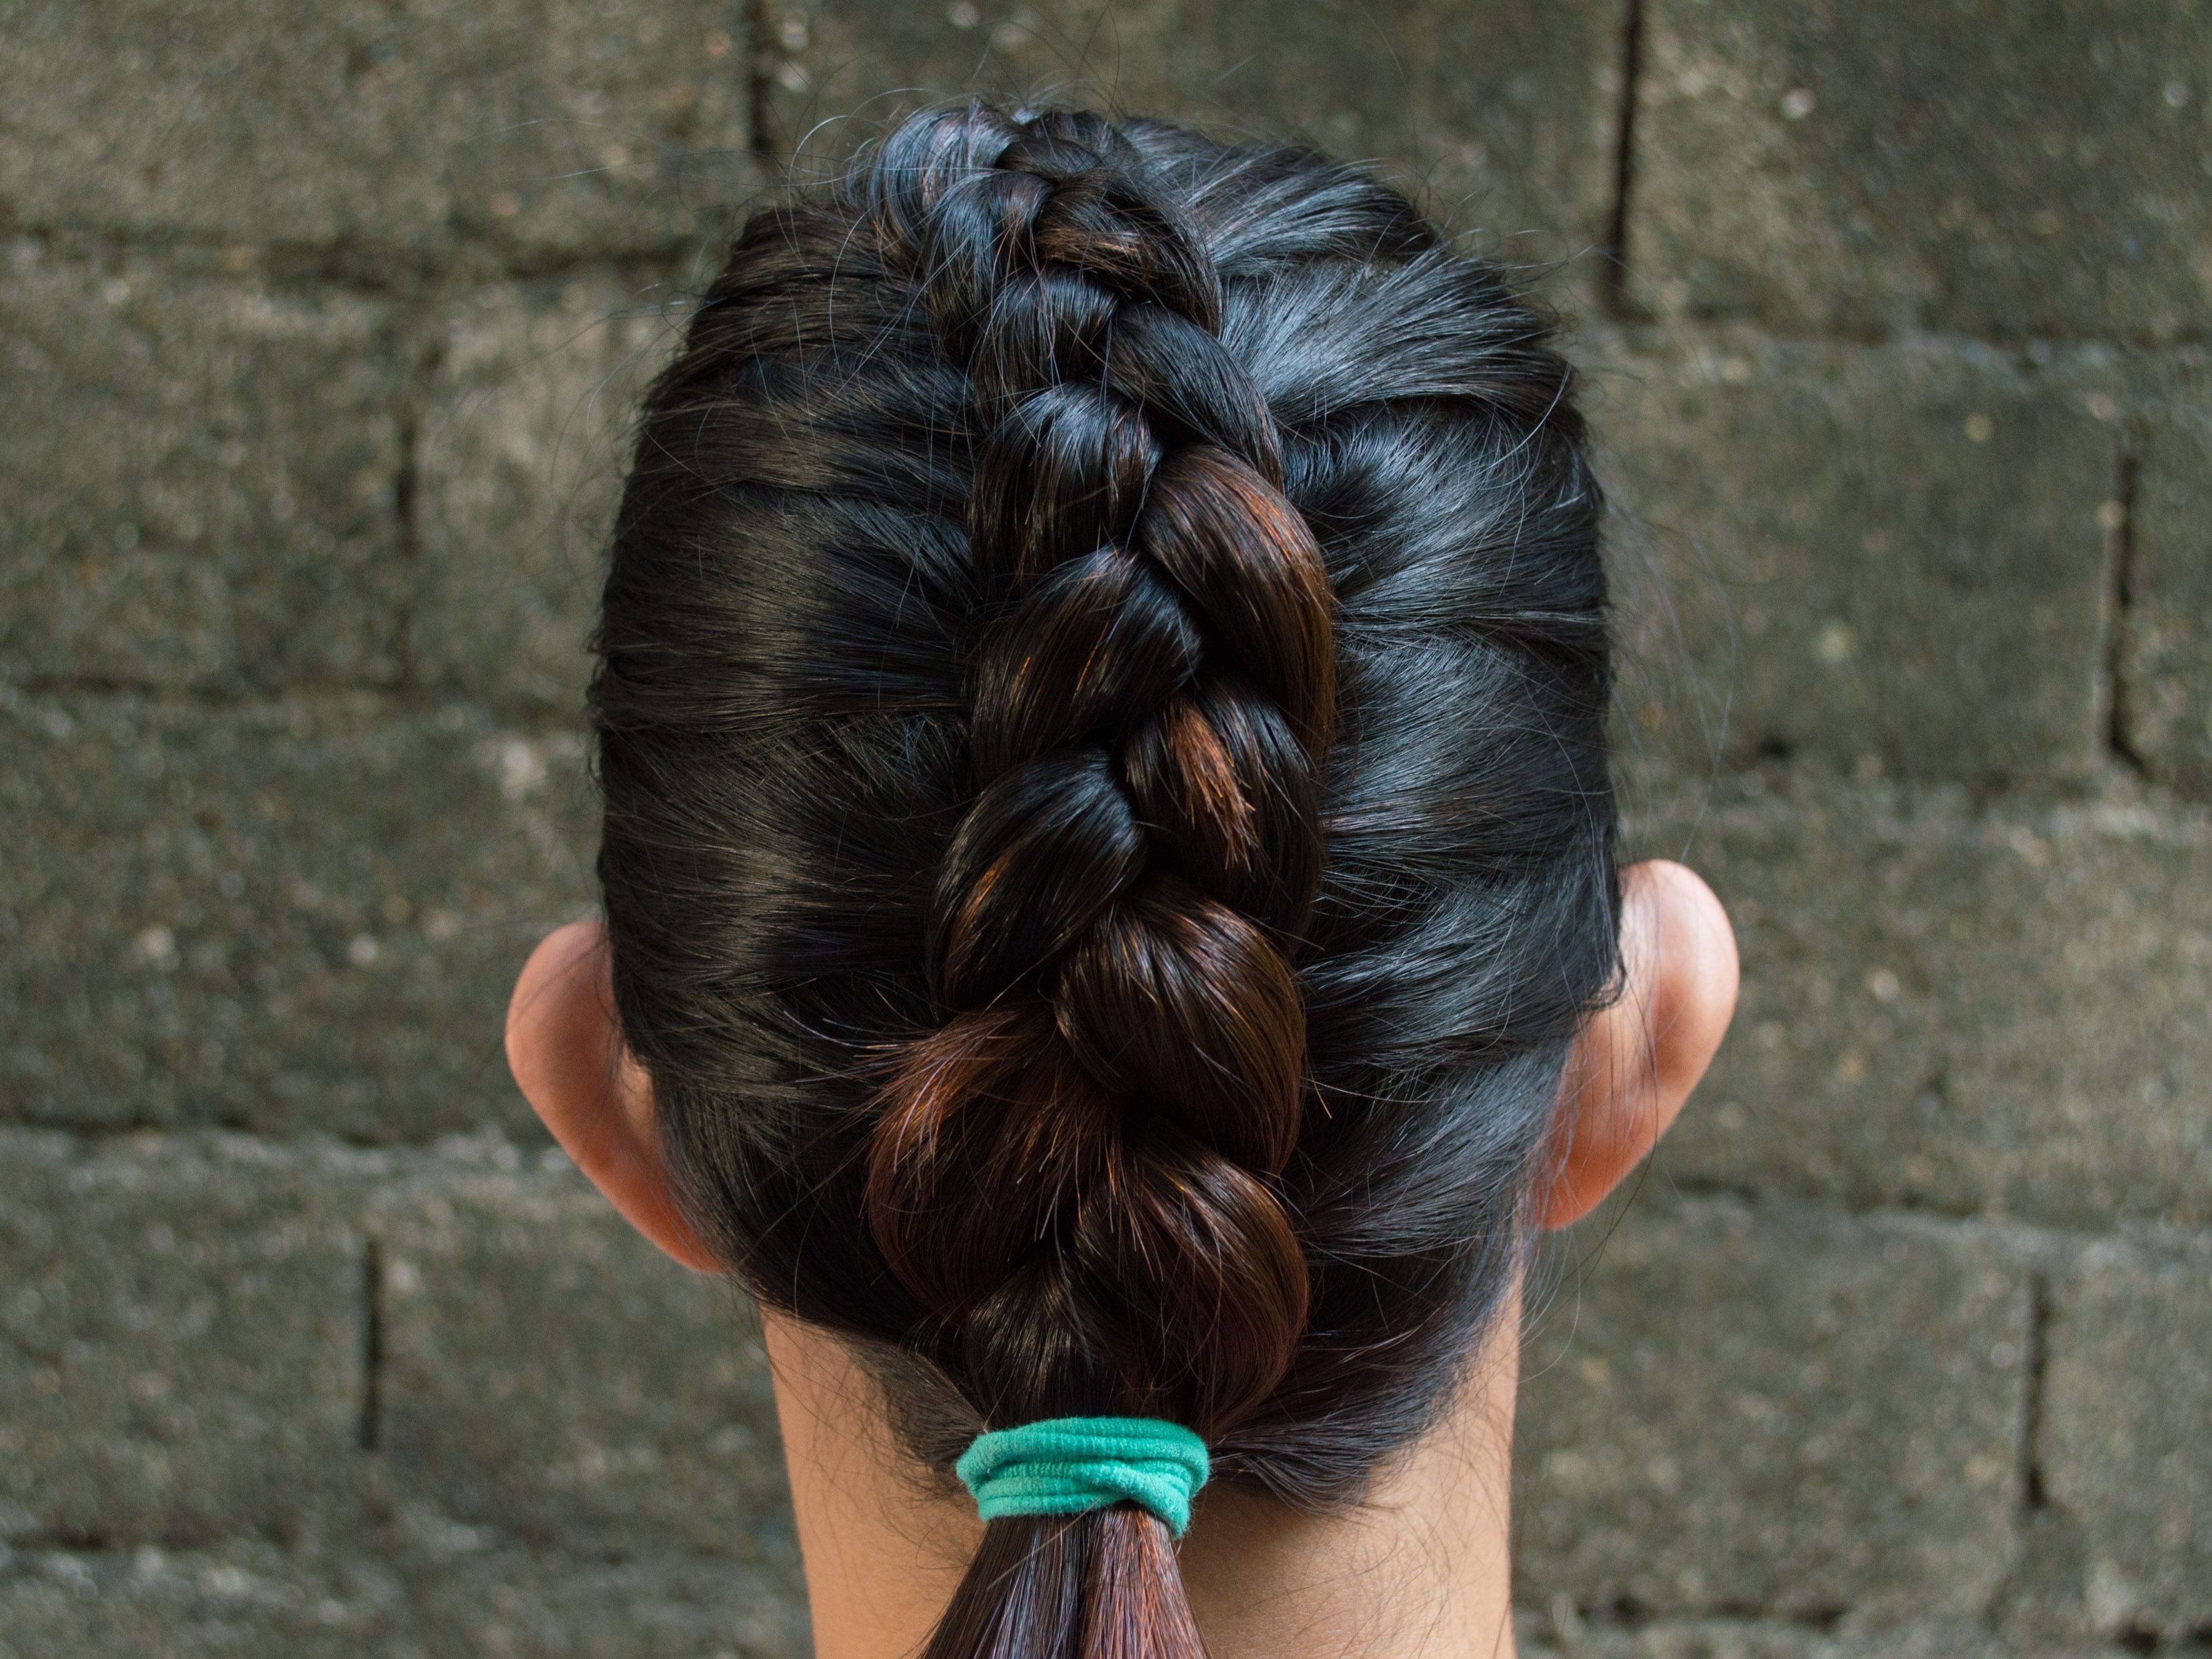 2018 Reverse Braid And Side Ponytail Hairstyles With How To Do A Reverse French Braid: 6 Steps (With Pictures) (View 2 of 20)